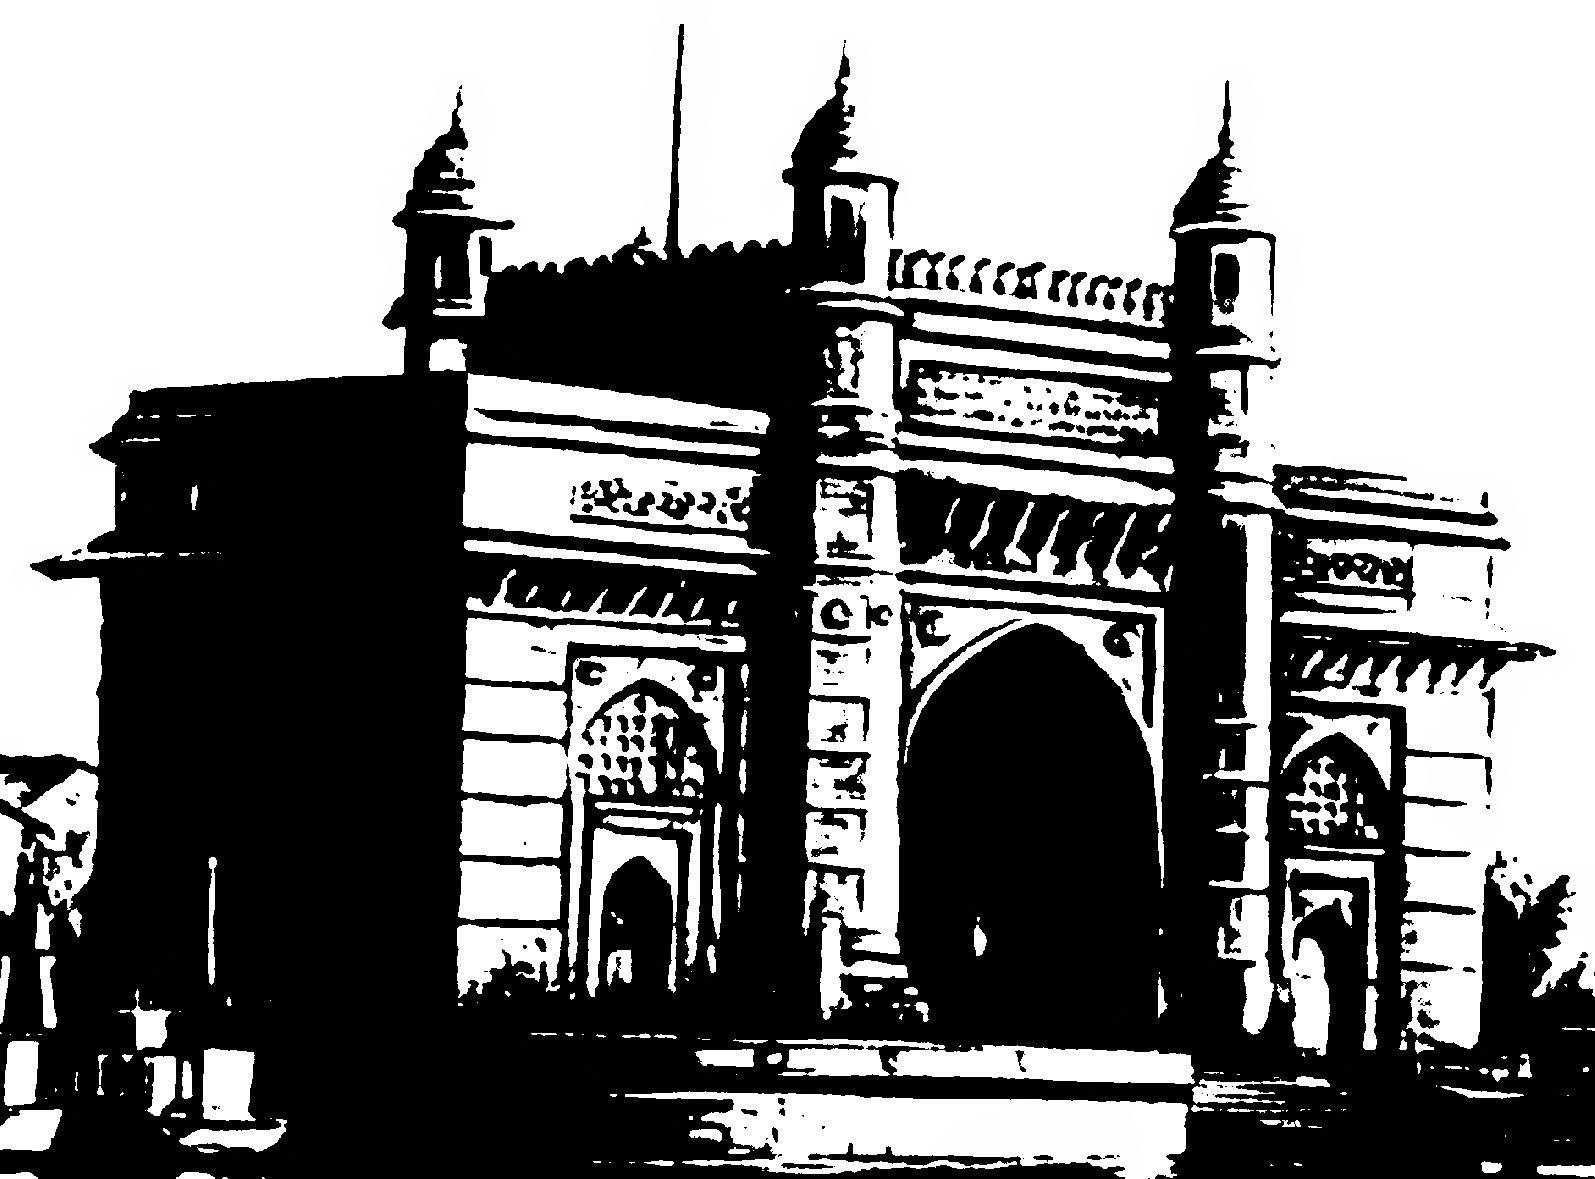 monuments of india drawing clip arts and images of india monuments of india line monuments drawing india of